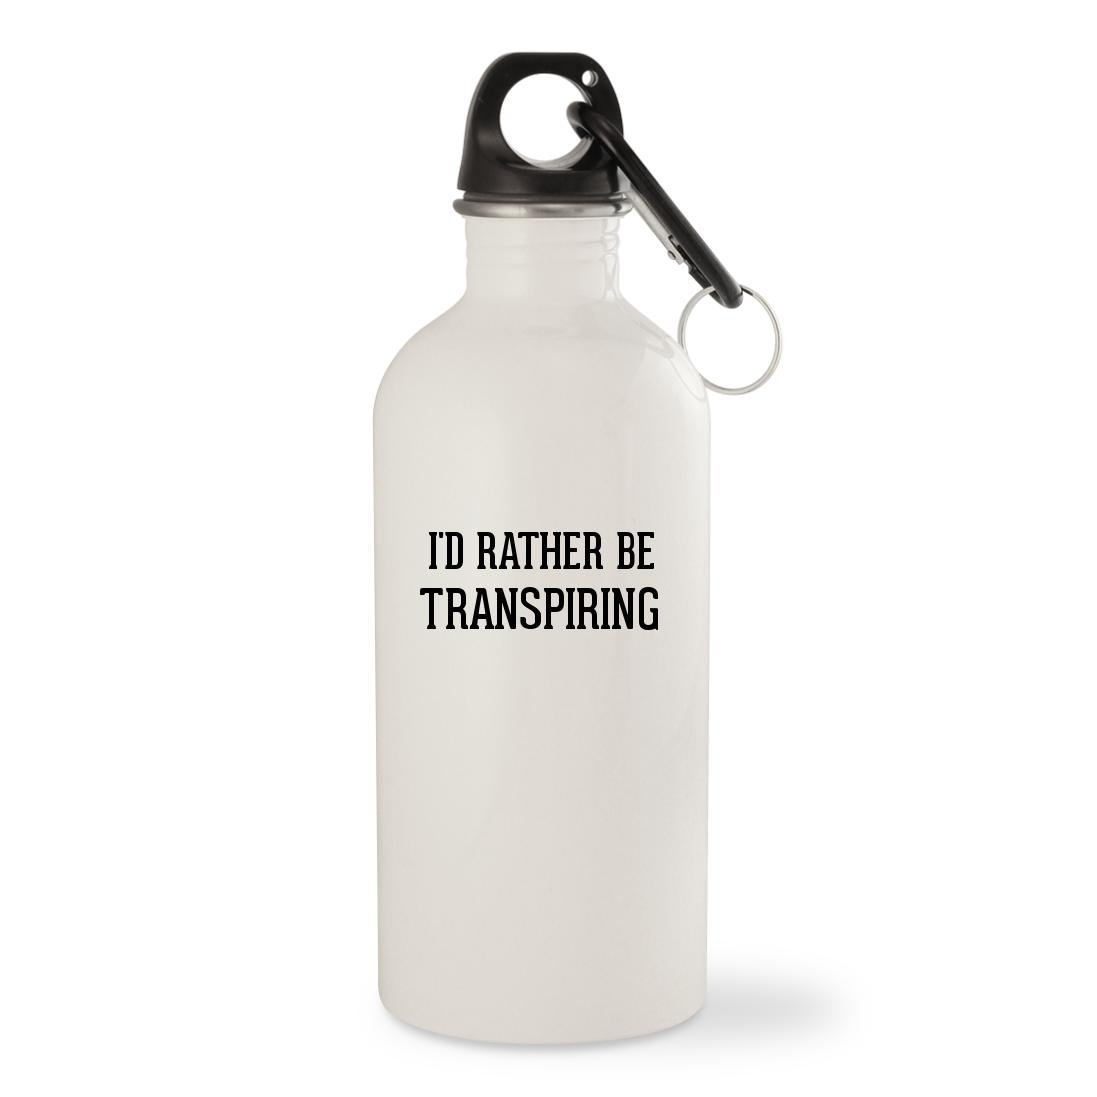 I'd Rather Be TRANSPIRING - White 20oz Stainless Steel Water Bottle with Carabiner